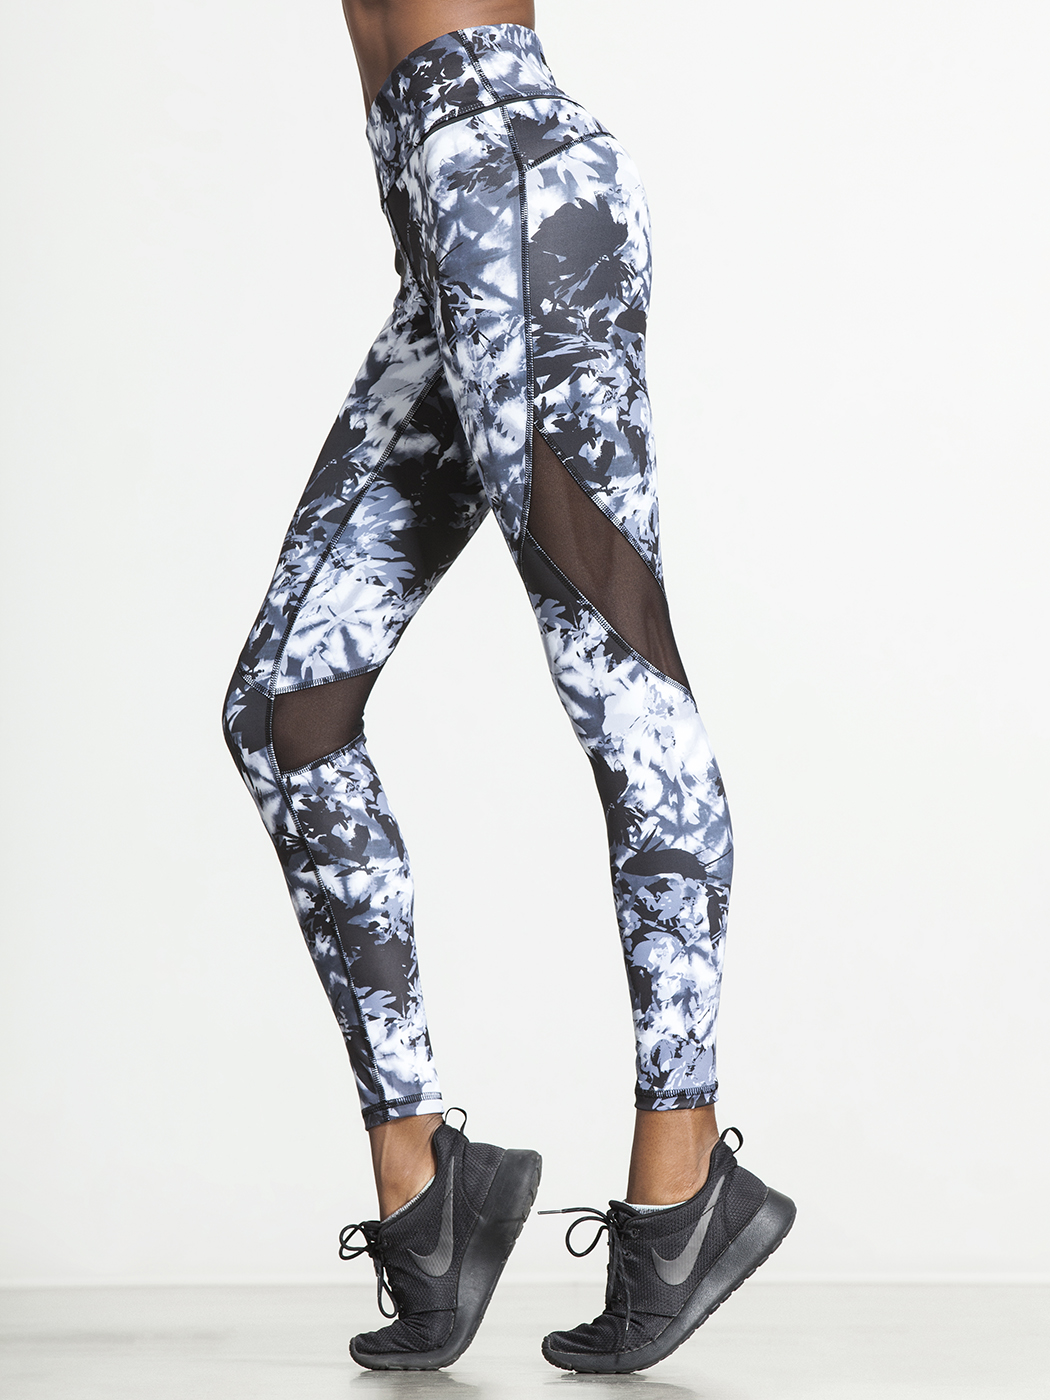 87ac3ed3ba83cf 16 Seriously Cute Workout Tights | Fitness Magazine